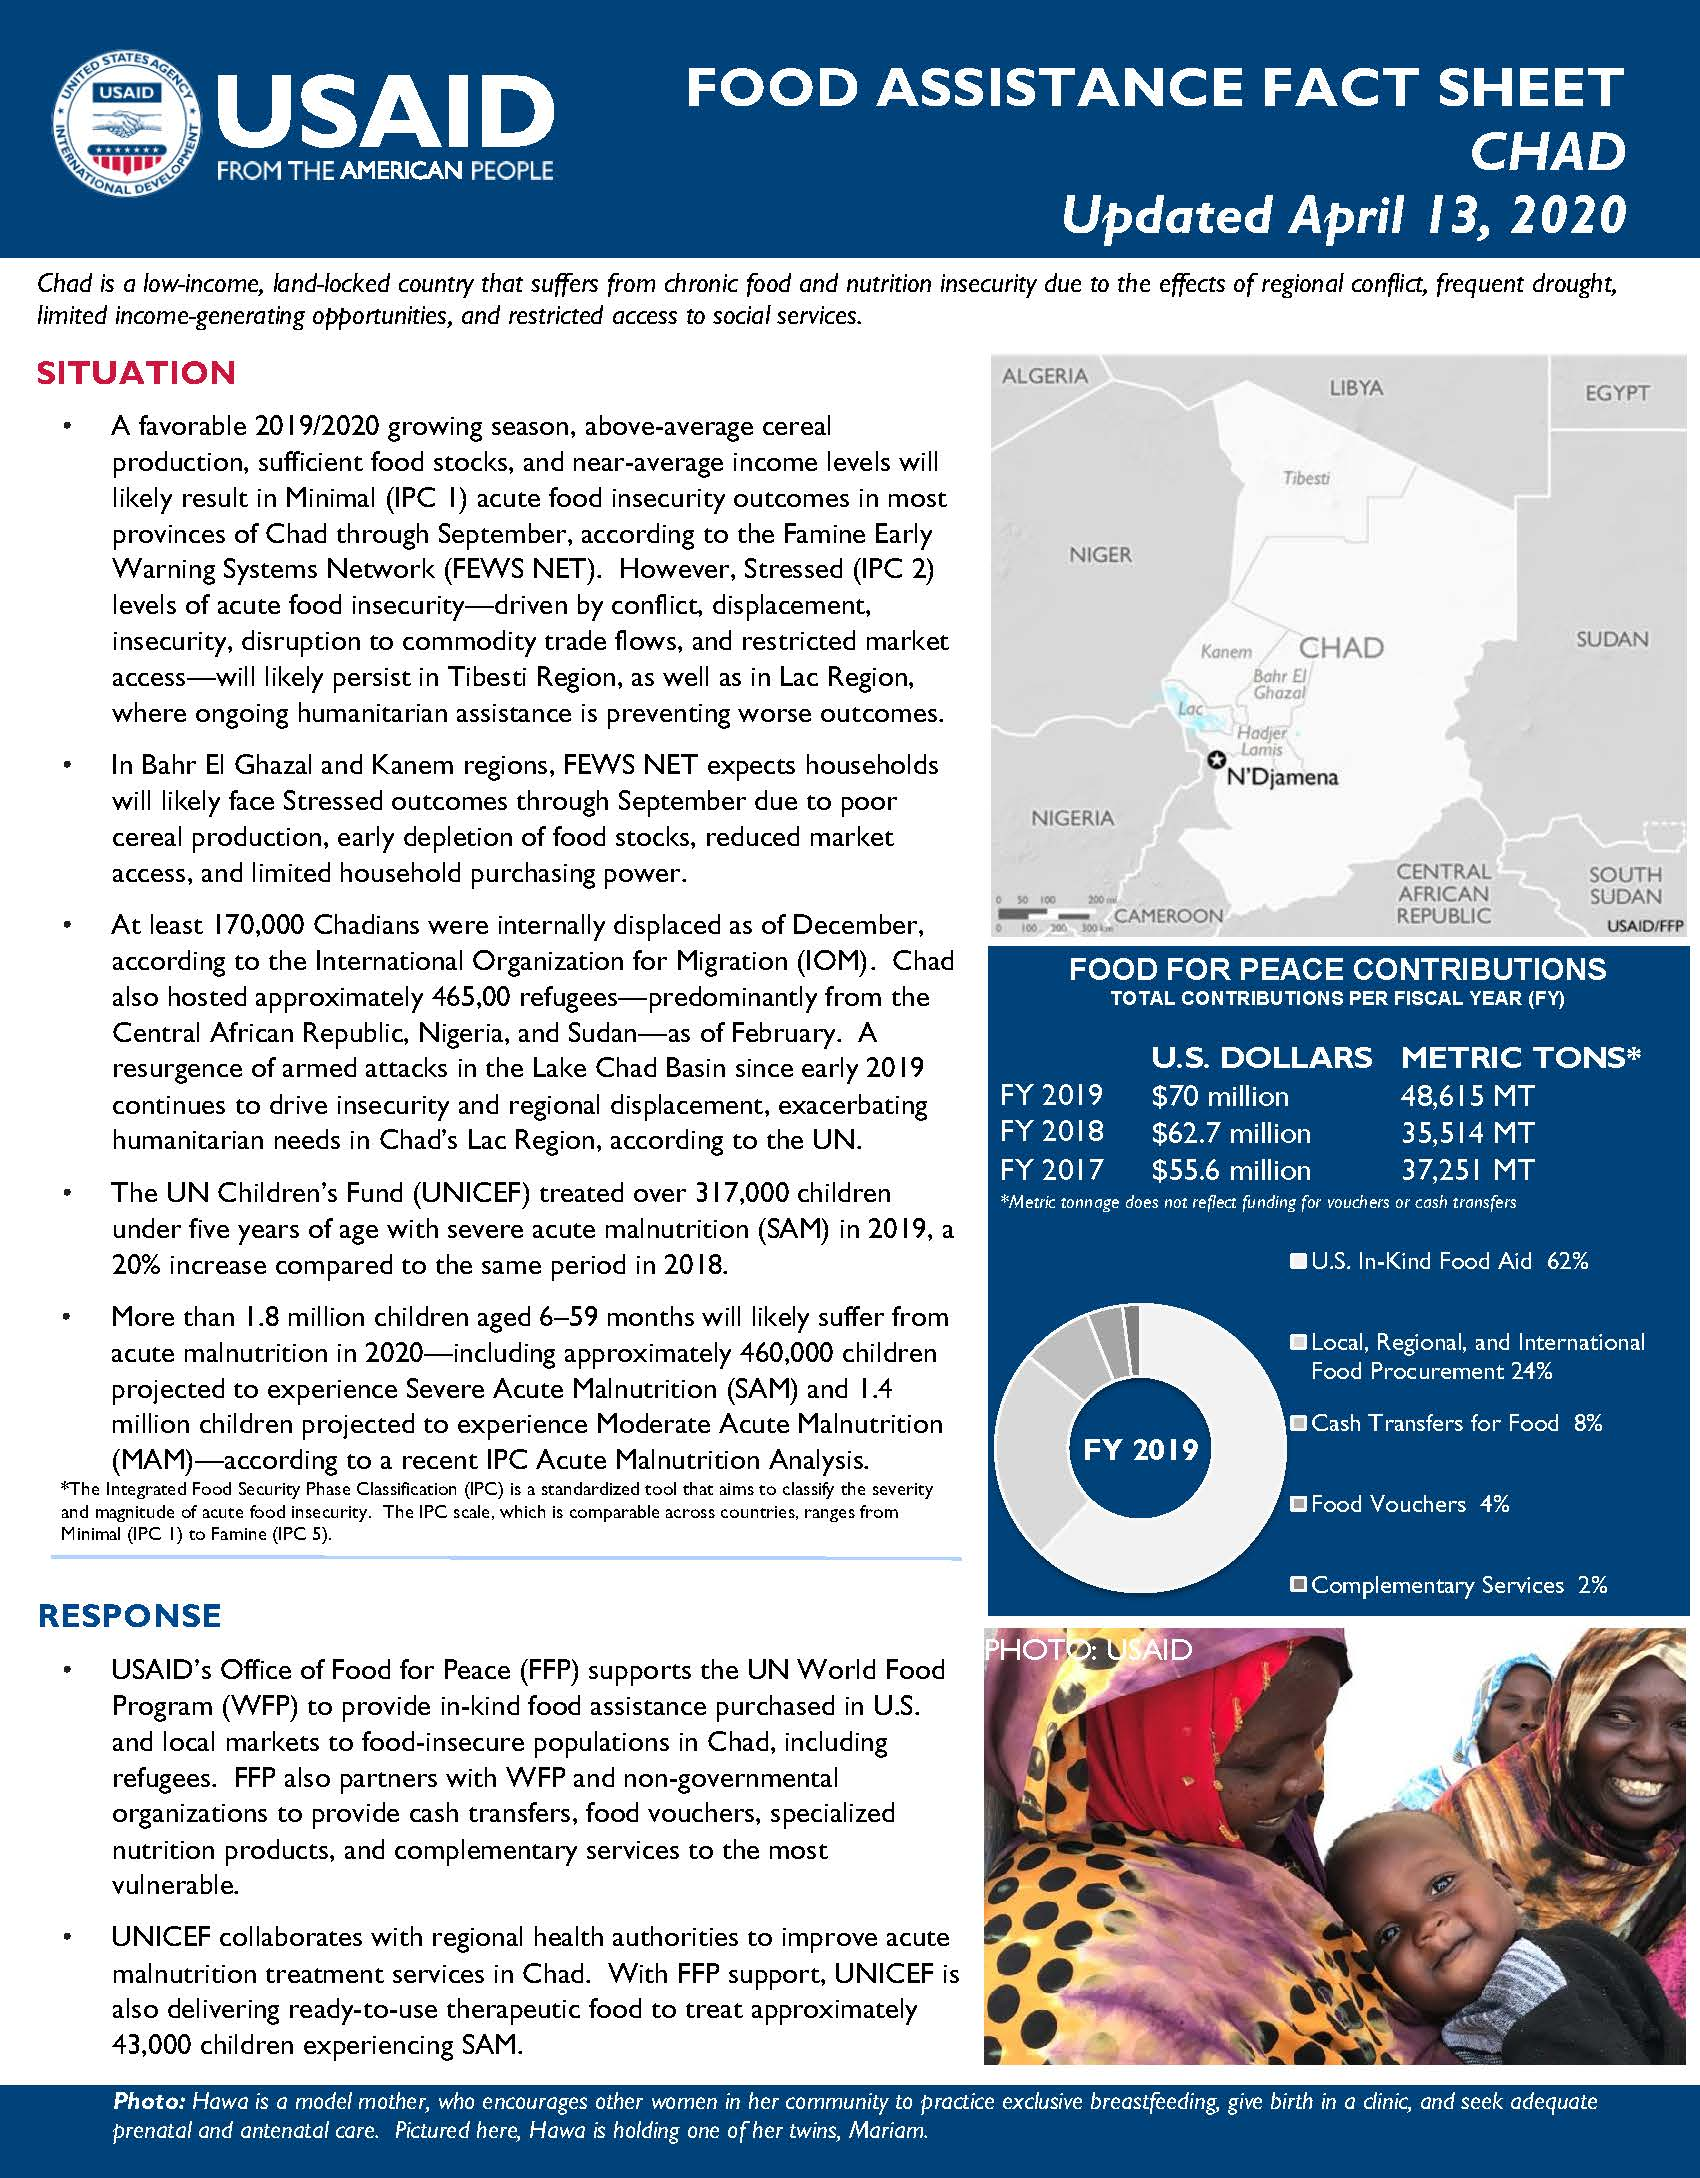 Food Assistance Fact Sheet - Chad